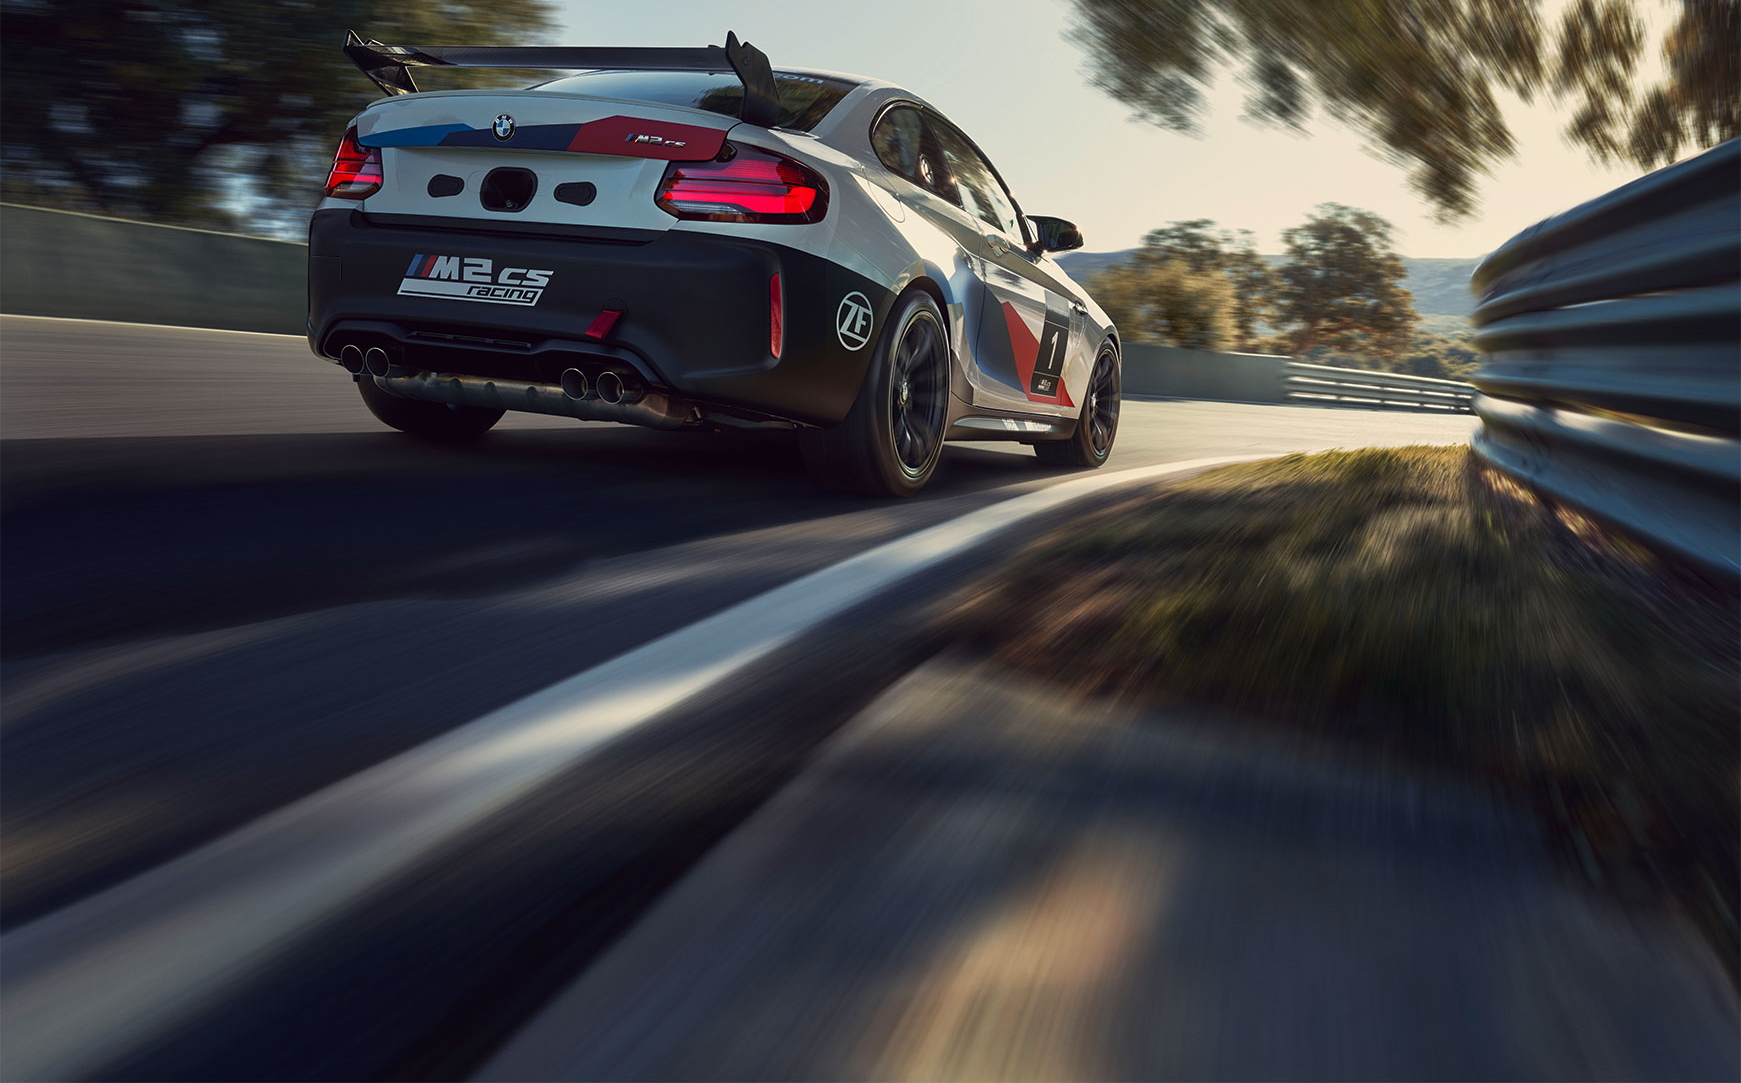 Registration for the BMW M2 Cup begins